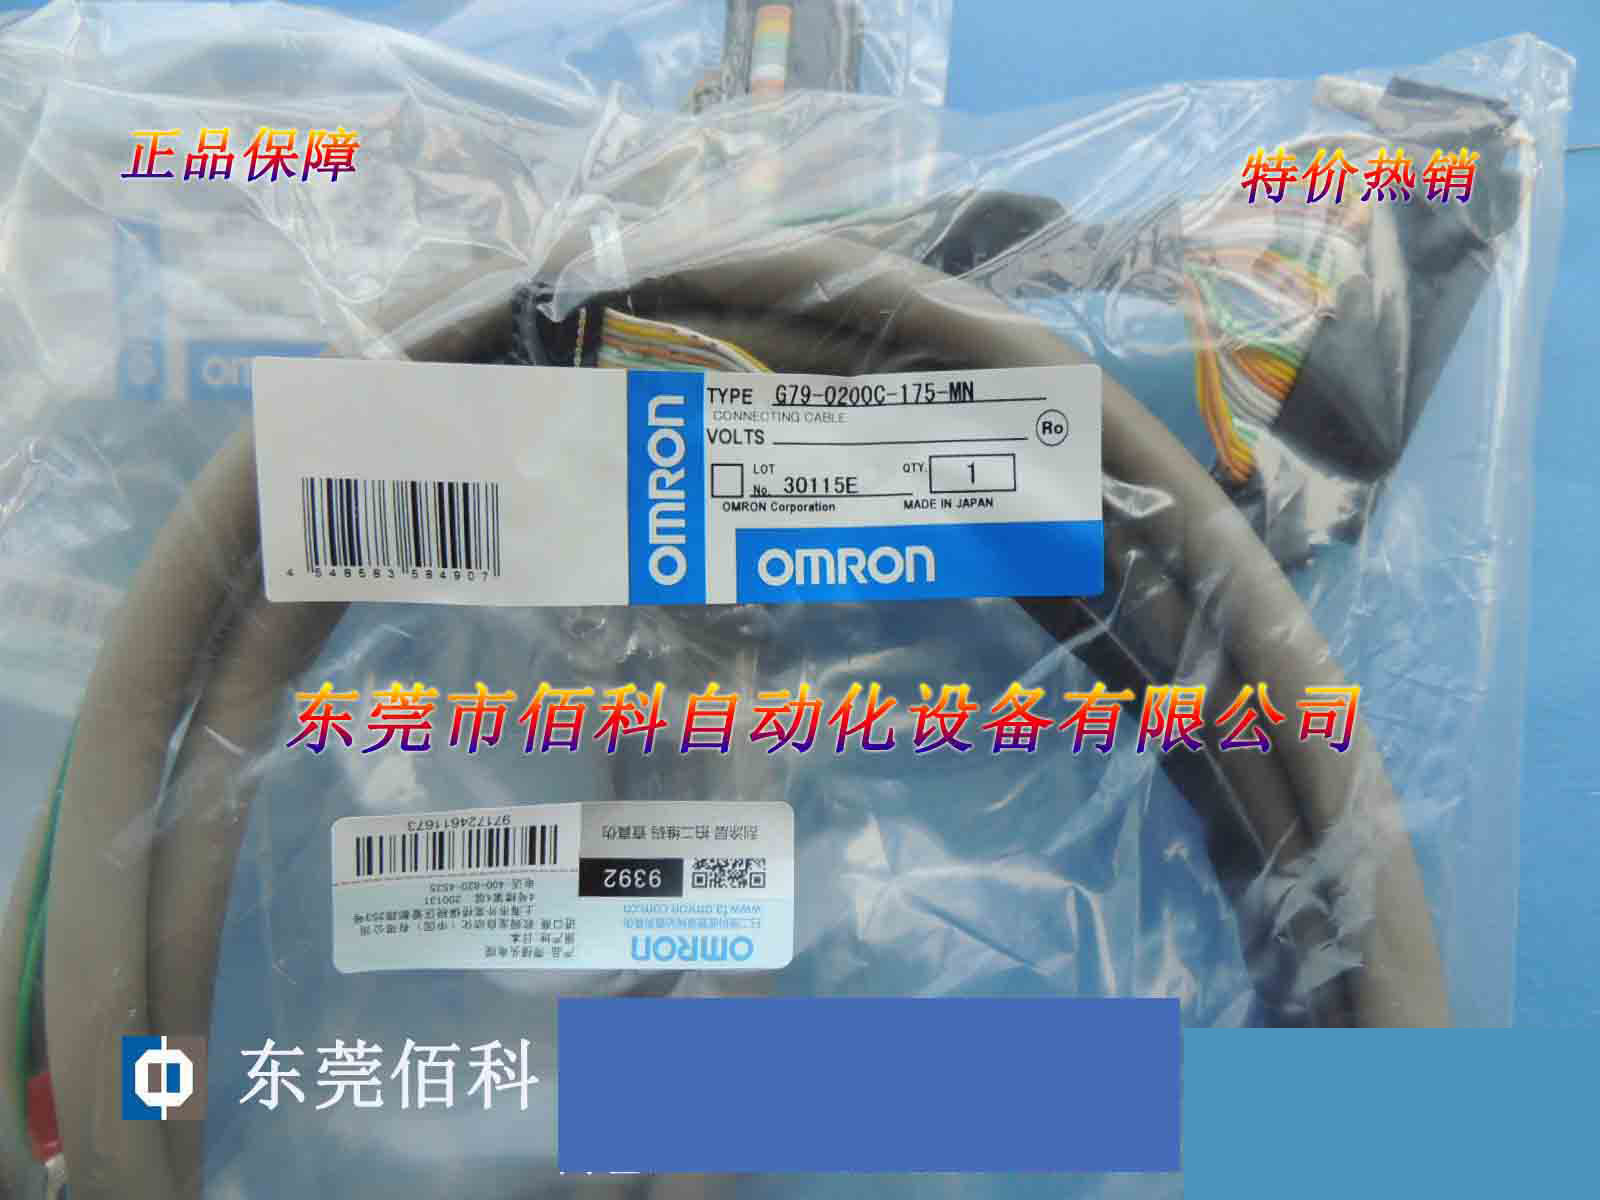 Special price new original omron connector G79-O200C-175-MNSpecial price new original omron connector G79-O200C-175-MN